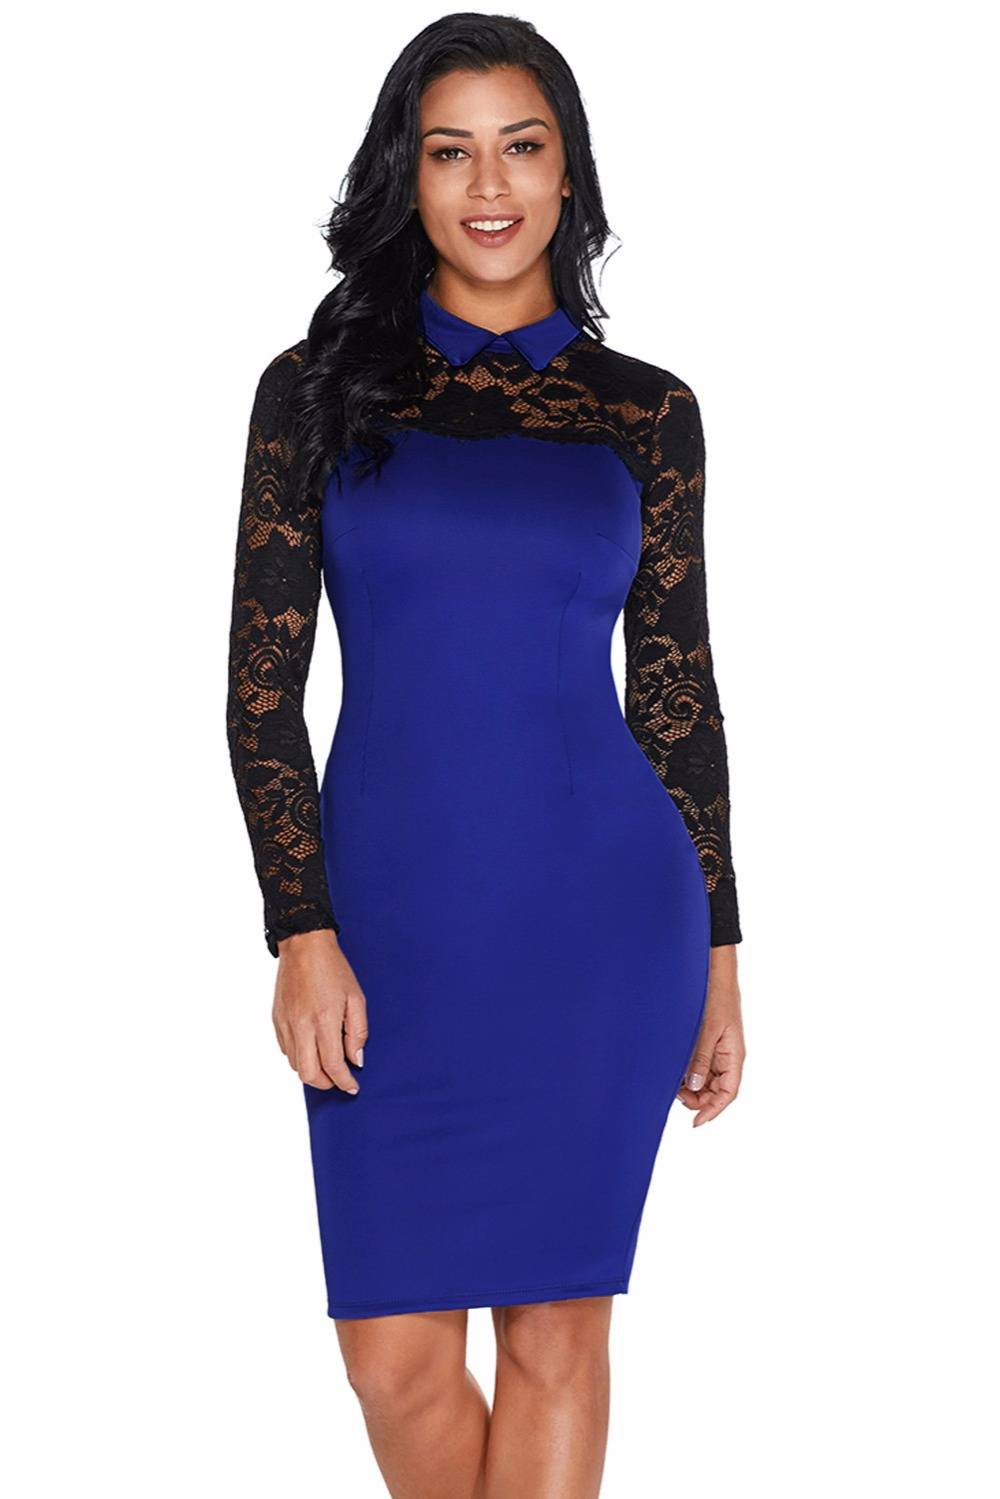 0521a1a6c71 Please contact us if you have any questions about our available sizes.